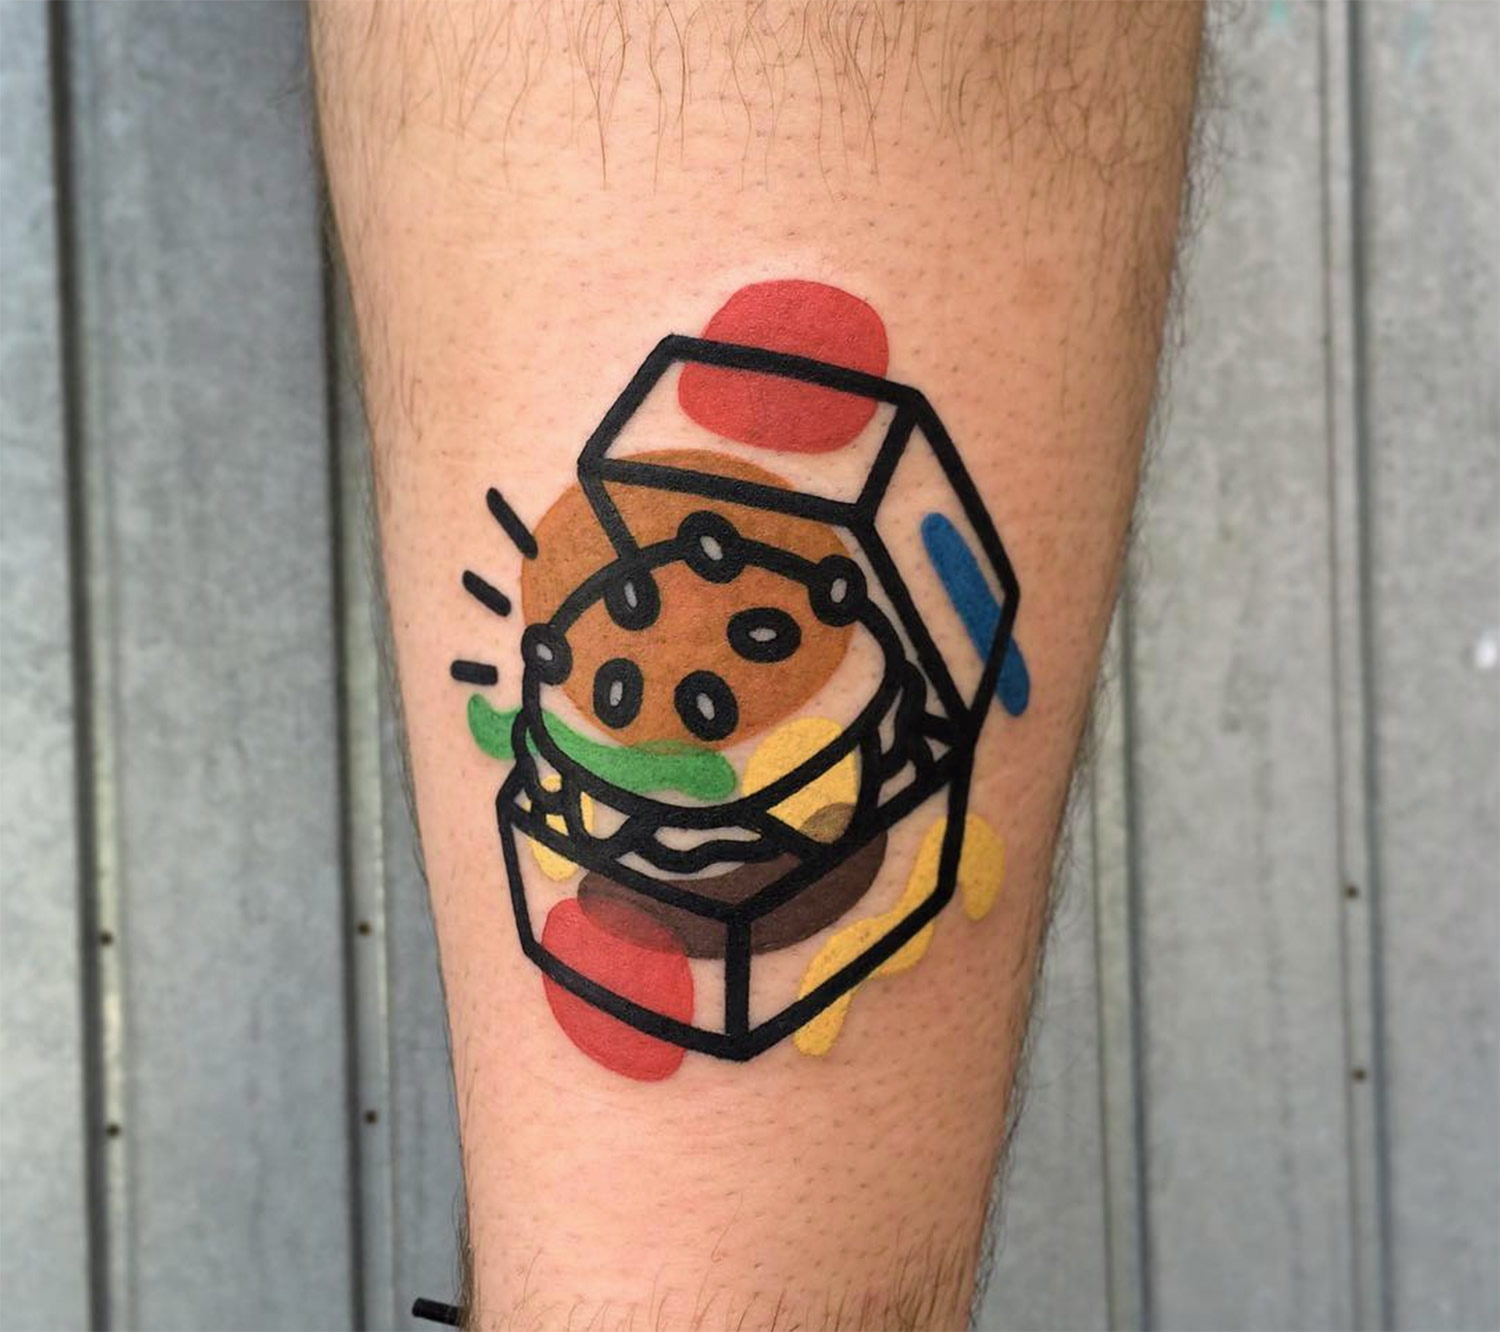 hamburger tattoo, abstract style, DESTRUTTURATA by mattia mambo